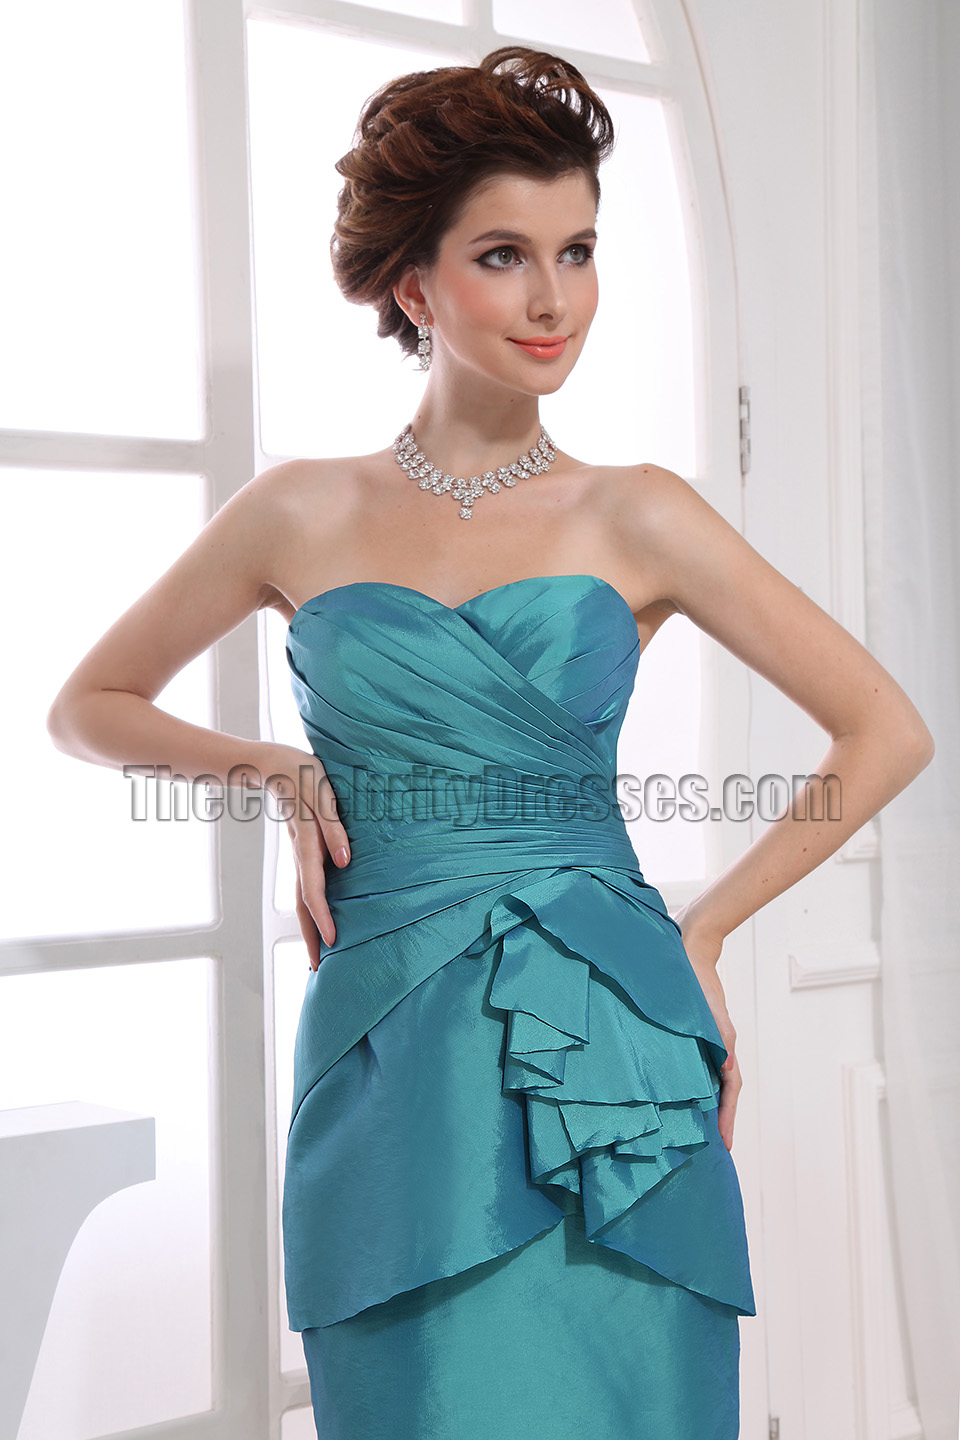 Elegant Strapless Short Party Dress Homecoming Bridesmaid Dresses ...